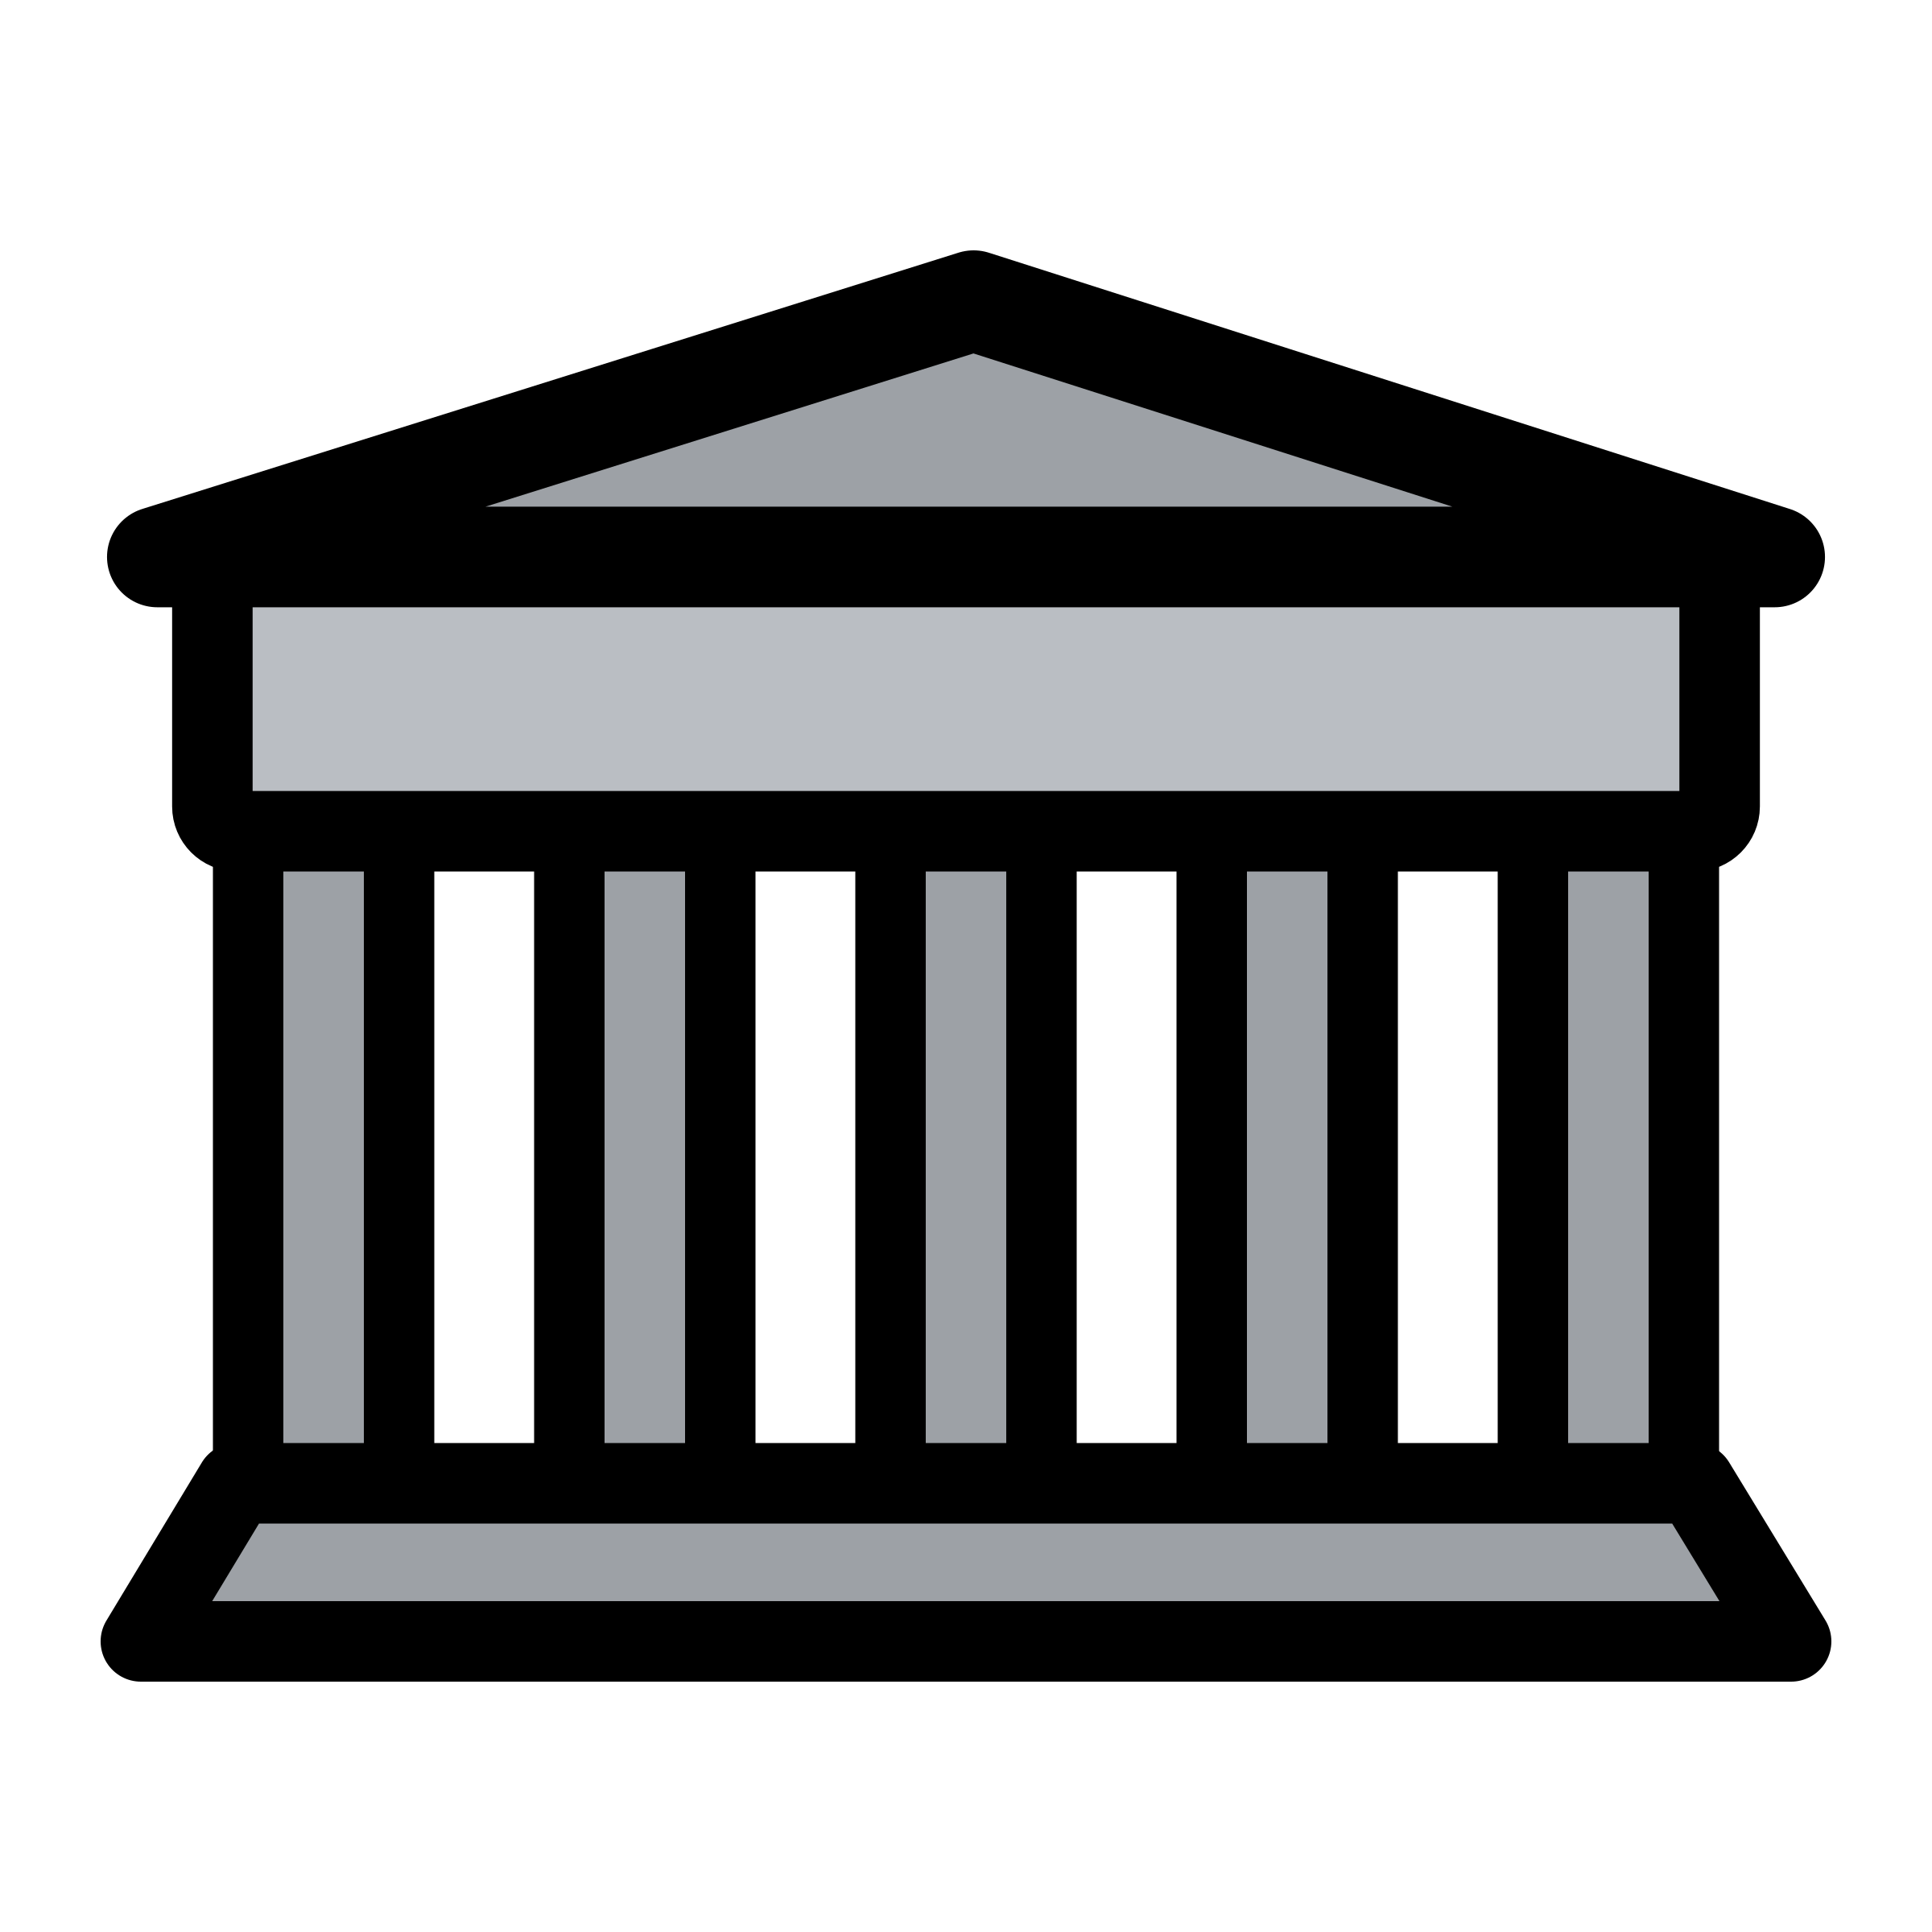 Clipart primary bank